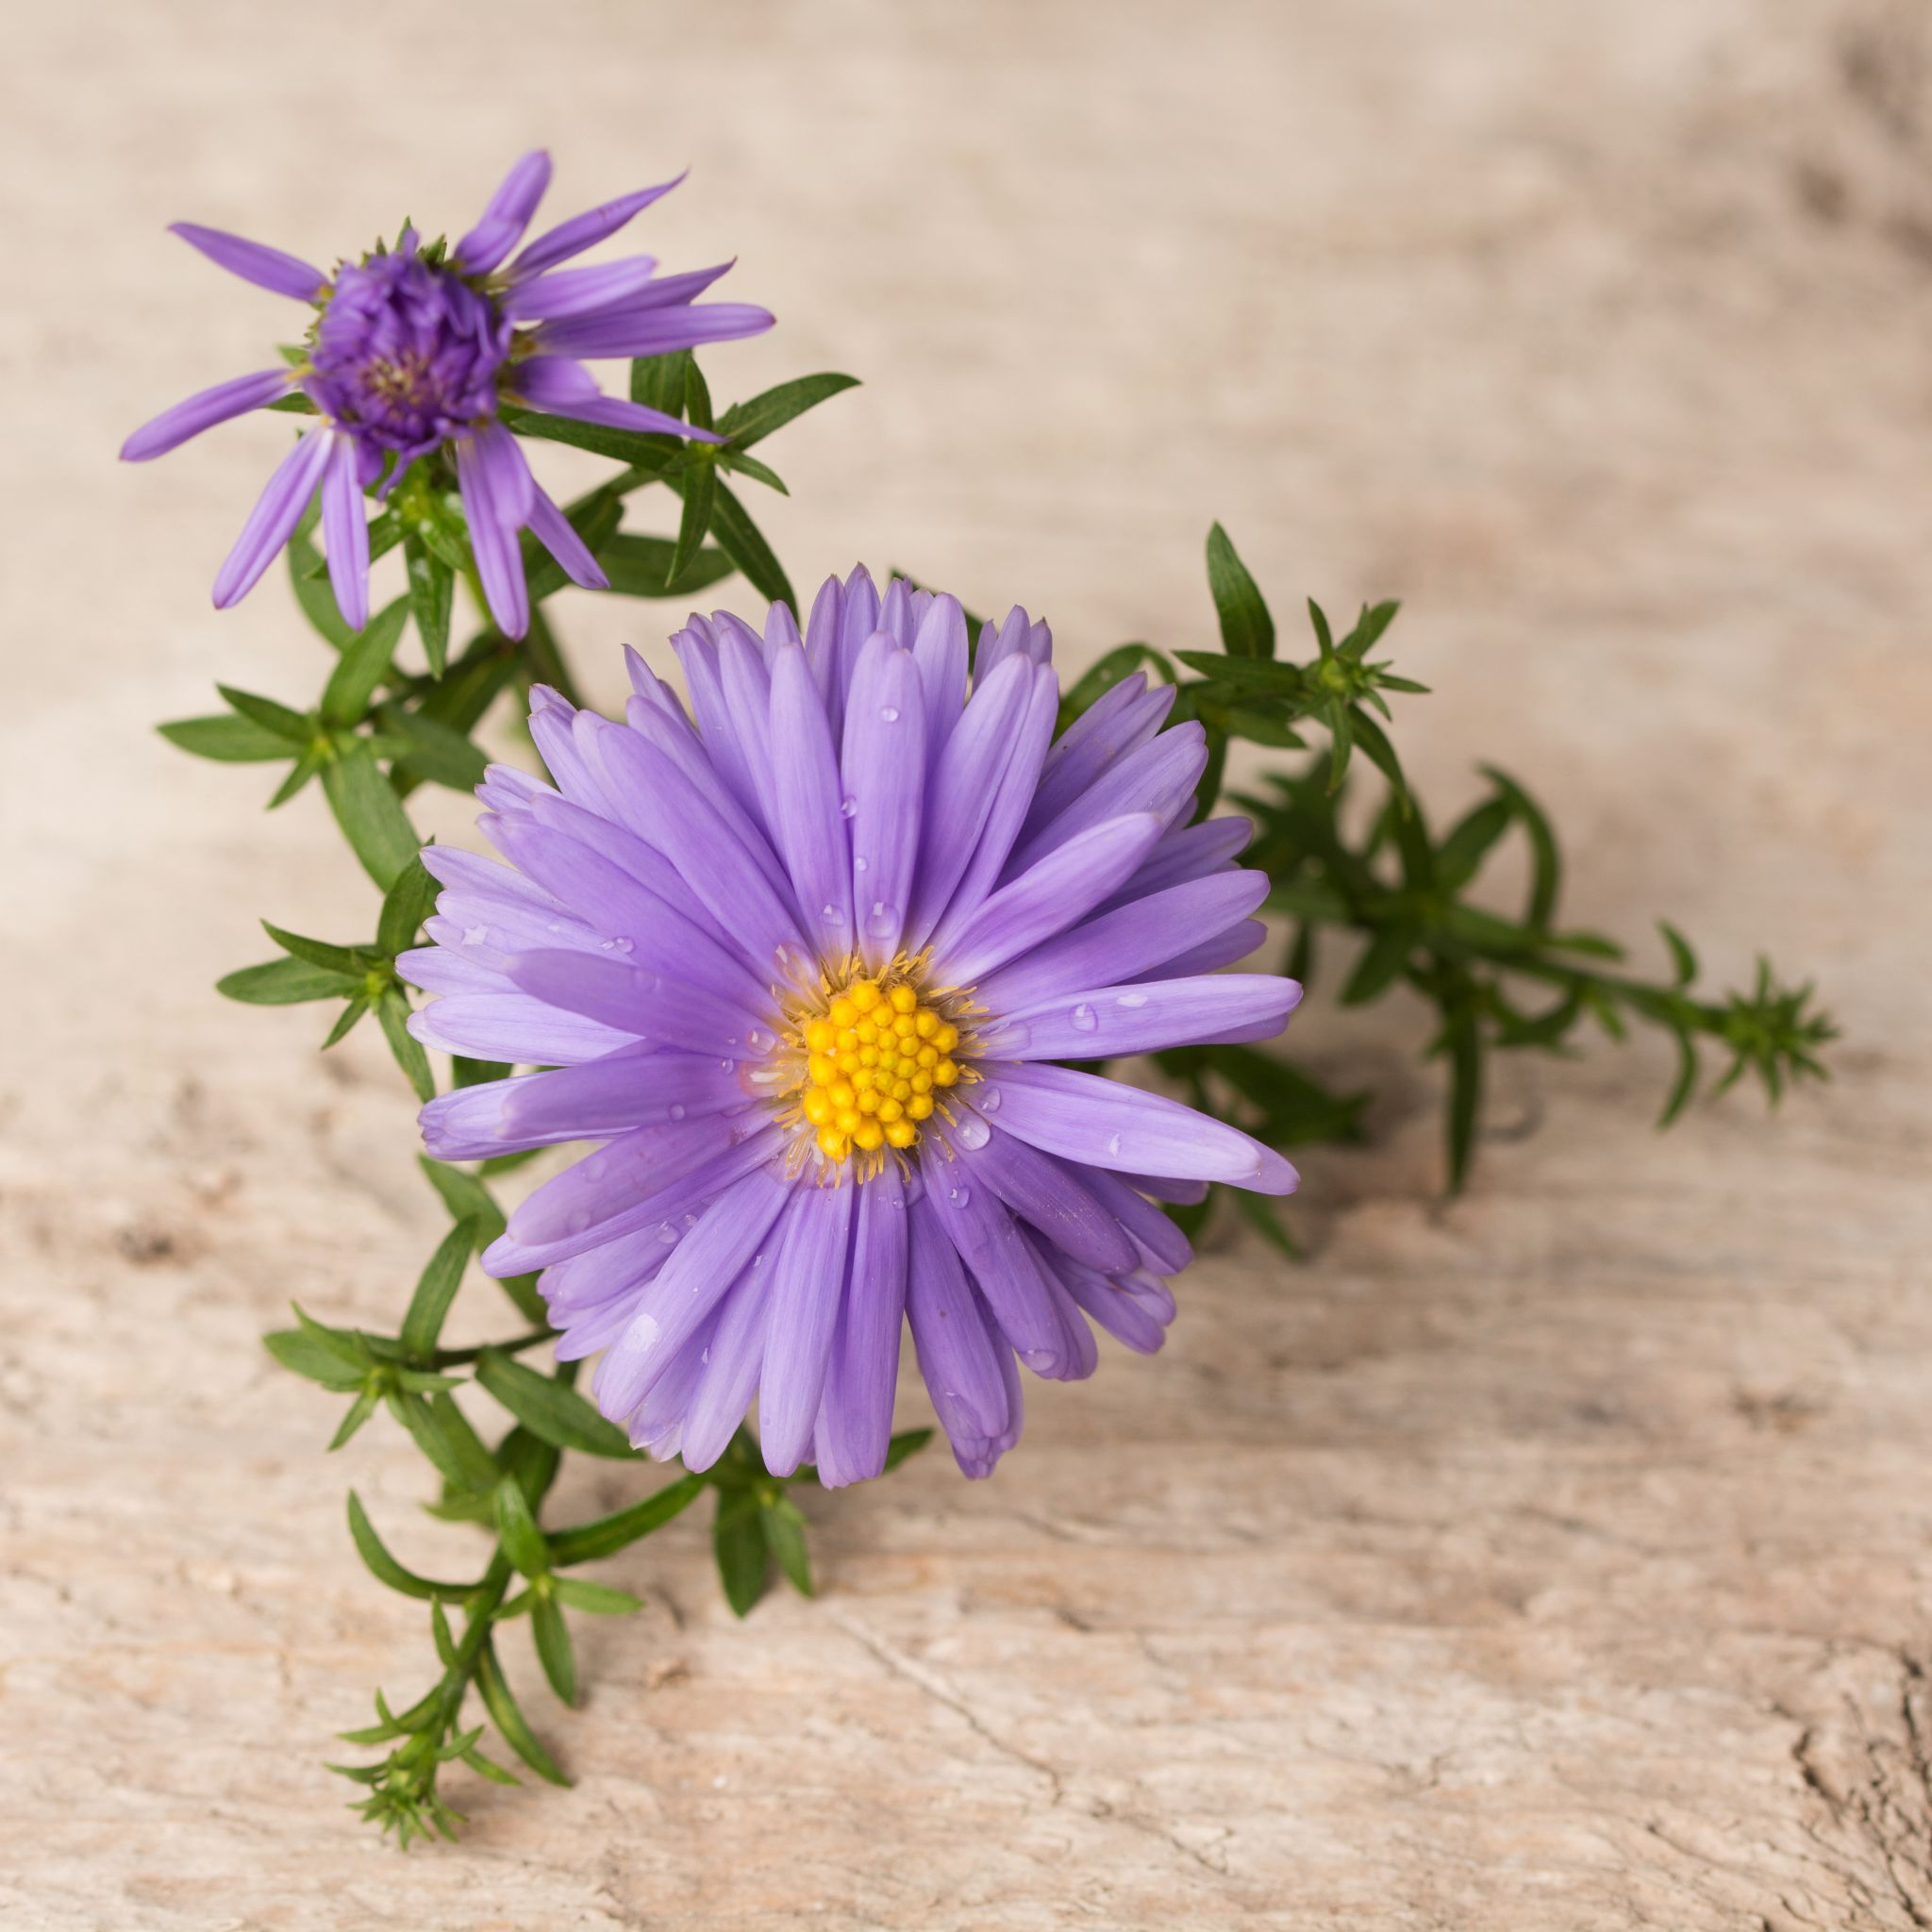 Herfst-Aster by gezienapomplooman